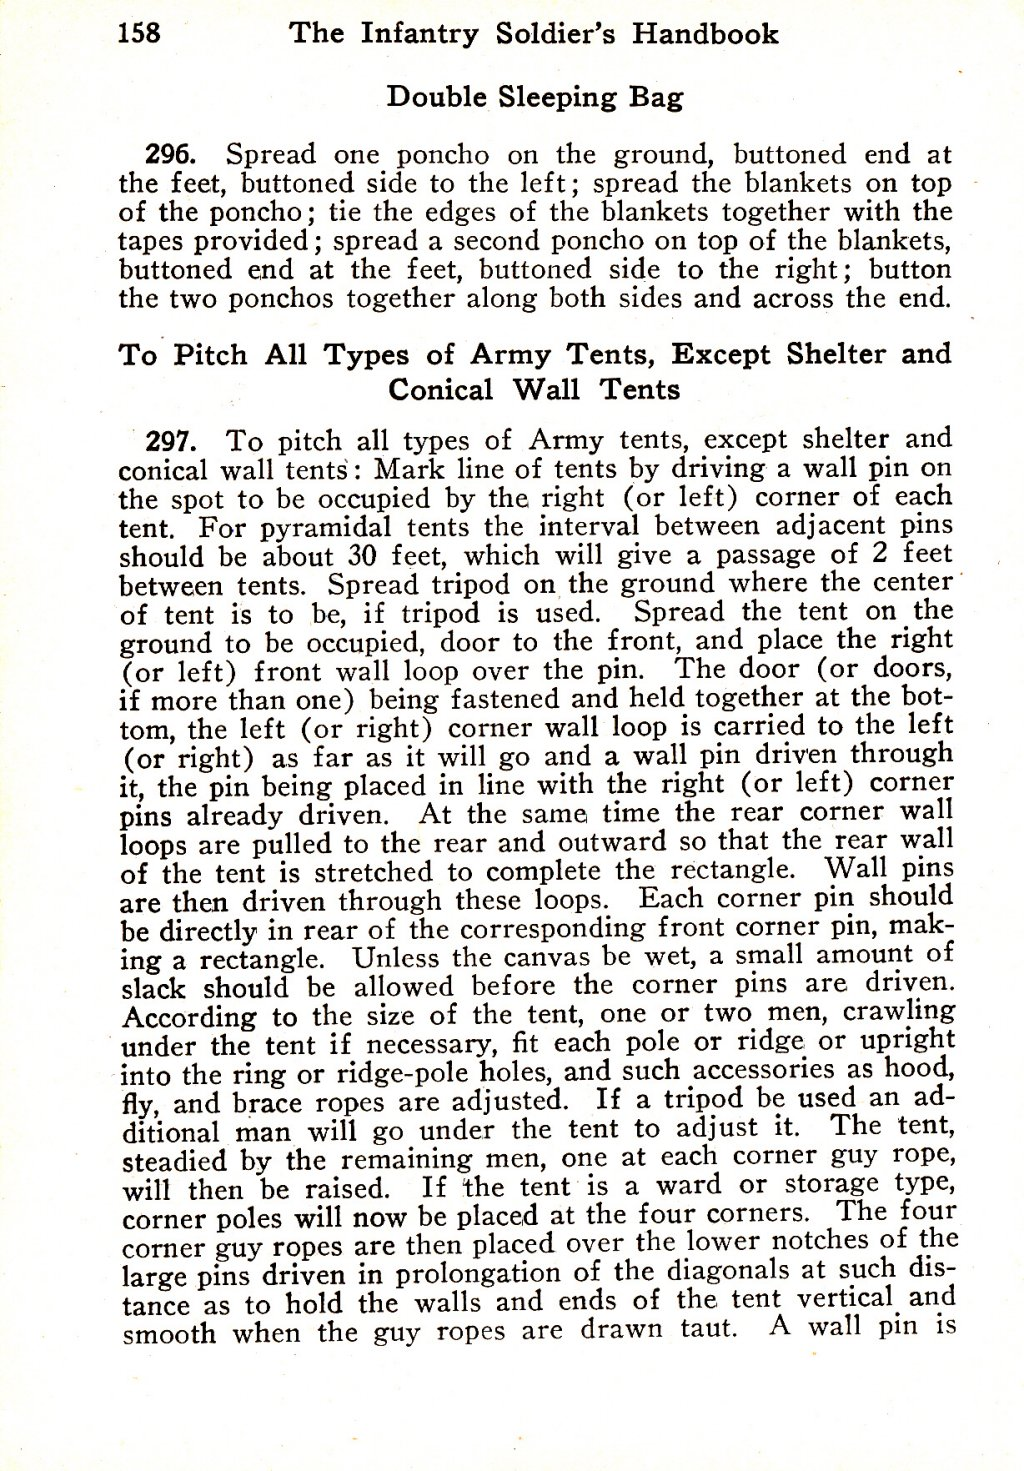 314th Infantry Regiment - Infantry Soldiers Handbook - Waldron - Page 158